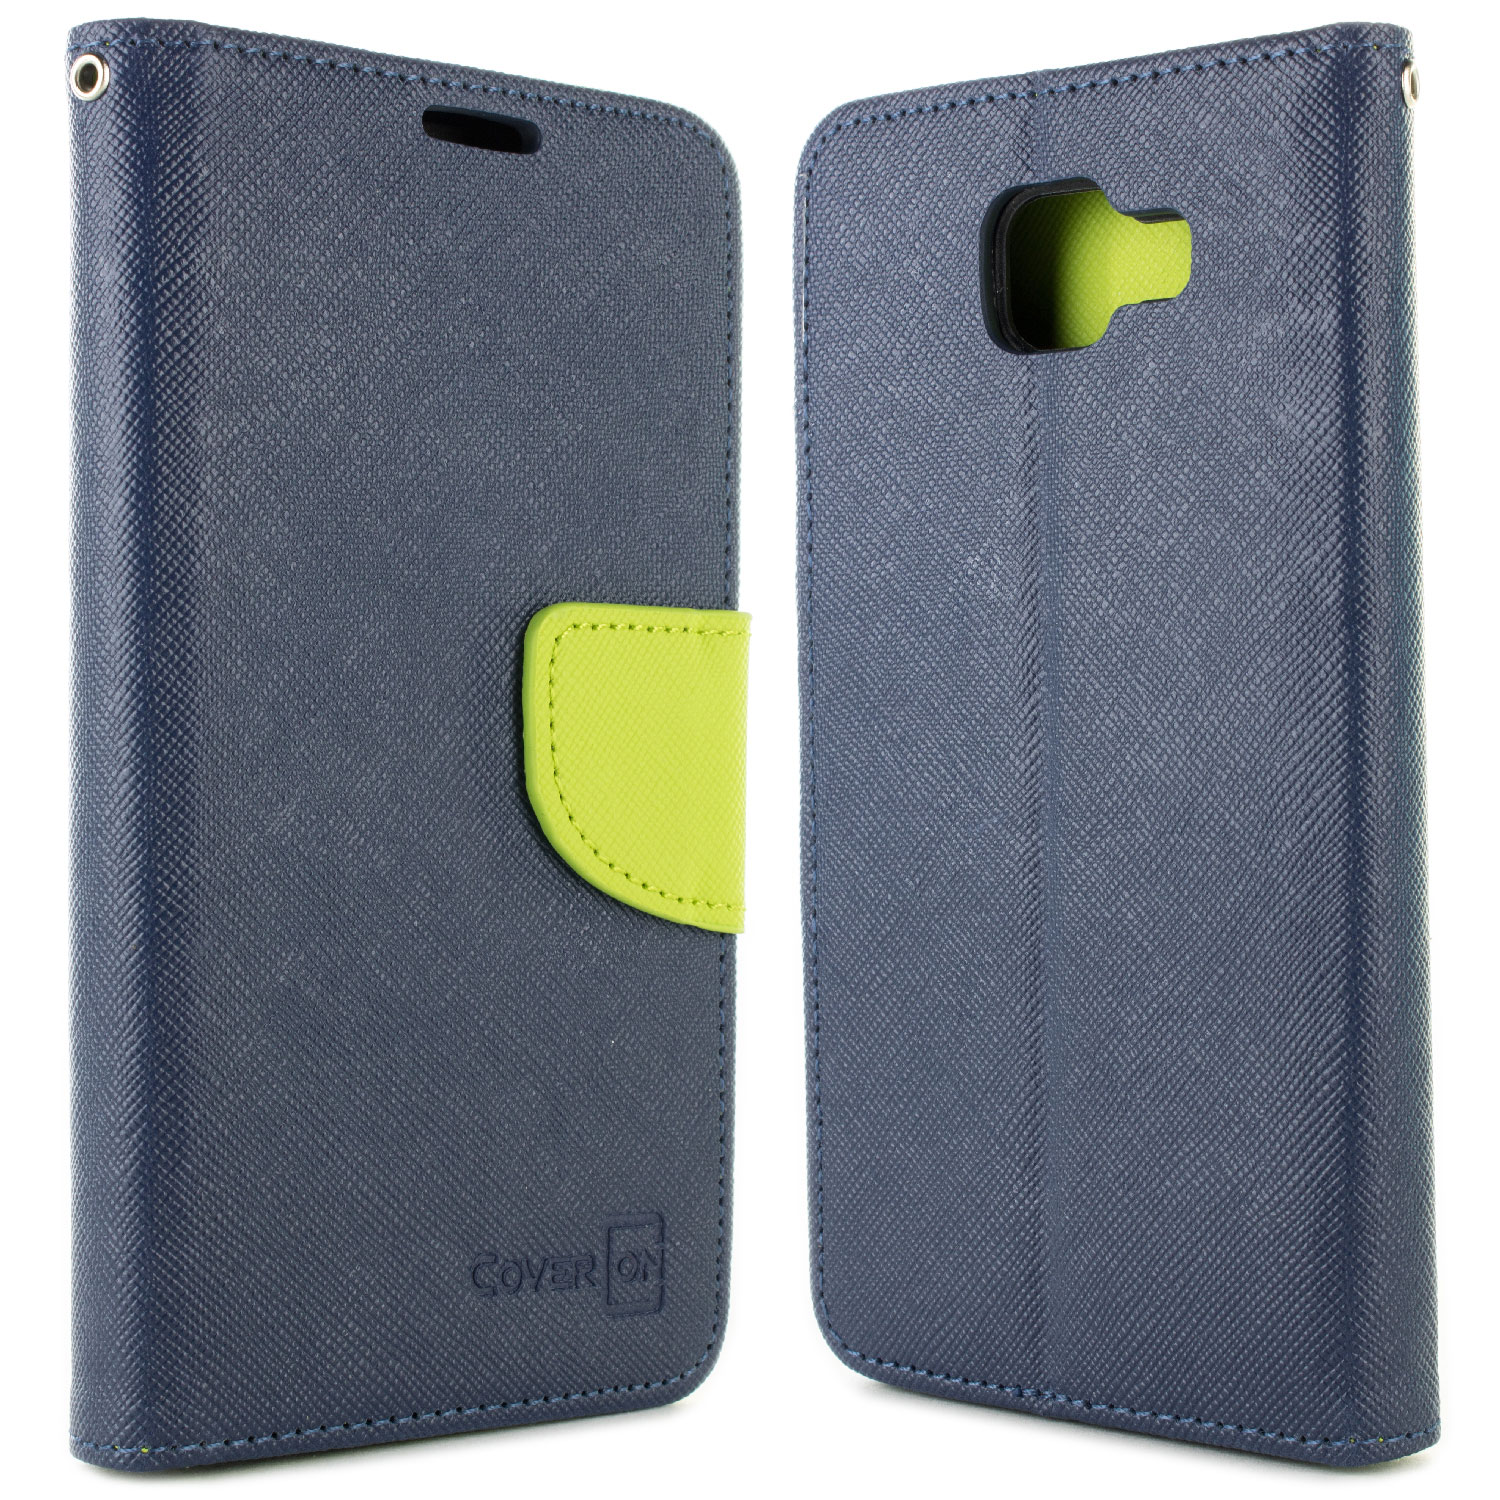 super popular b342c 7dad1 Details about Navy / Neon Green Cover for Samsung Galaxy A5 2016 A510 Card  Case Holder Pouch